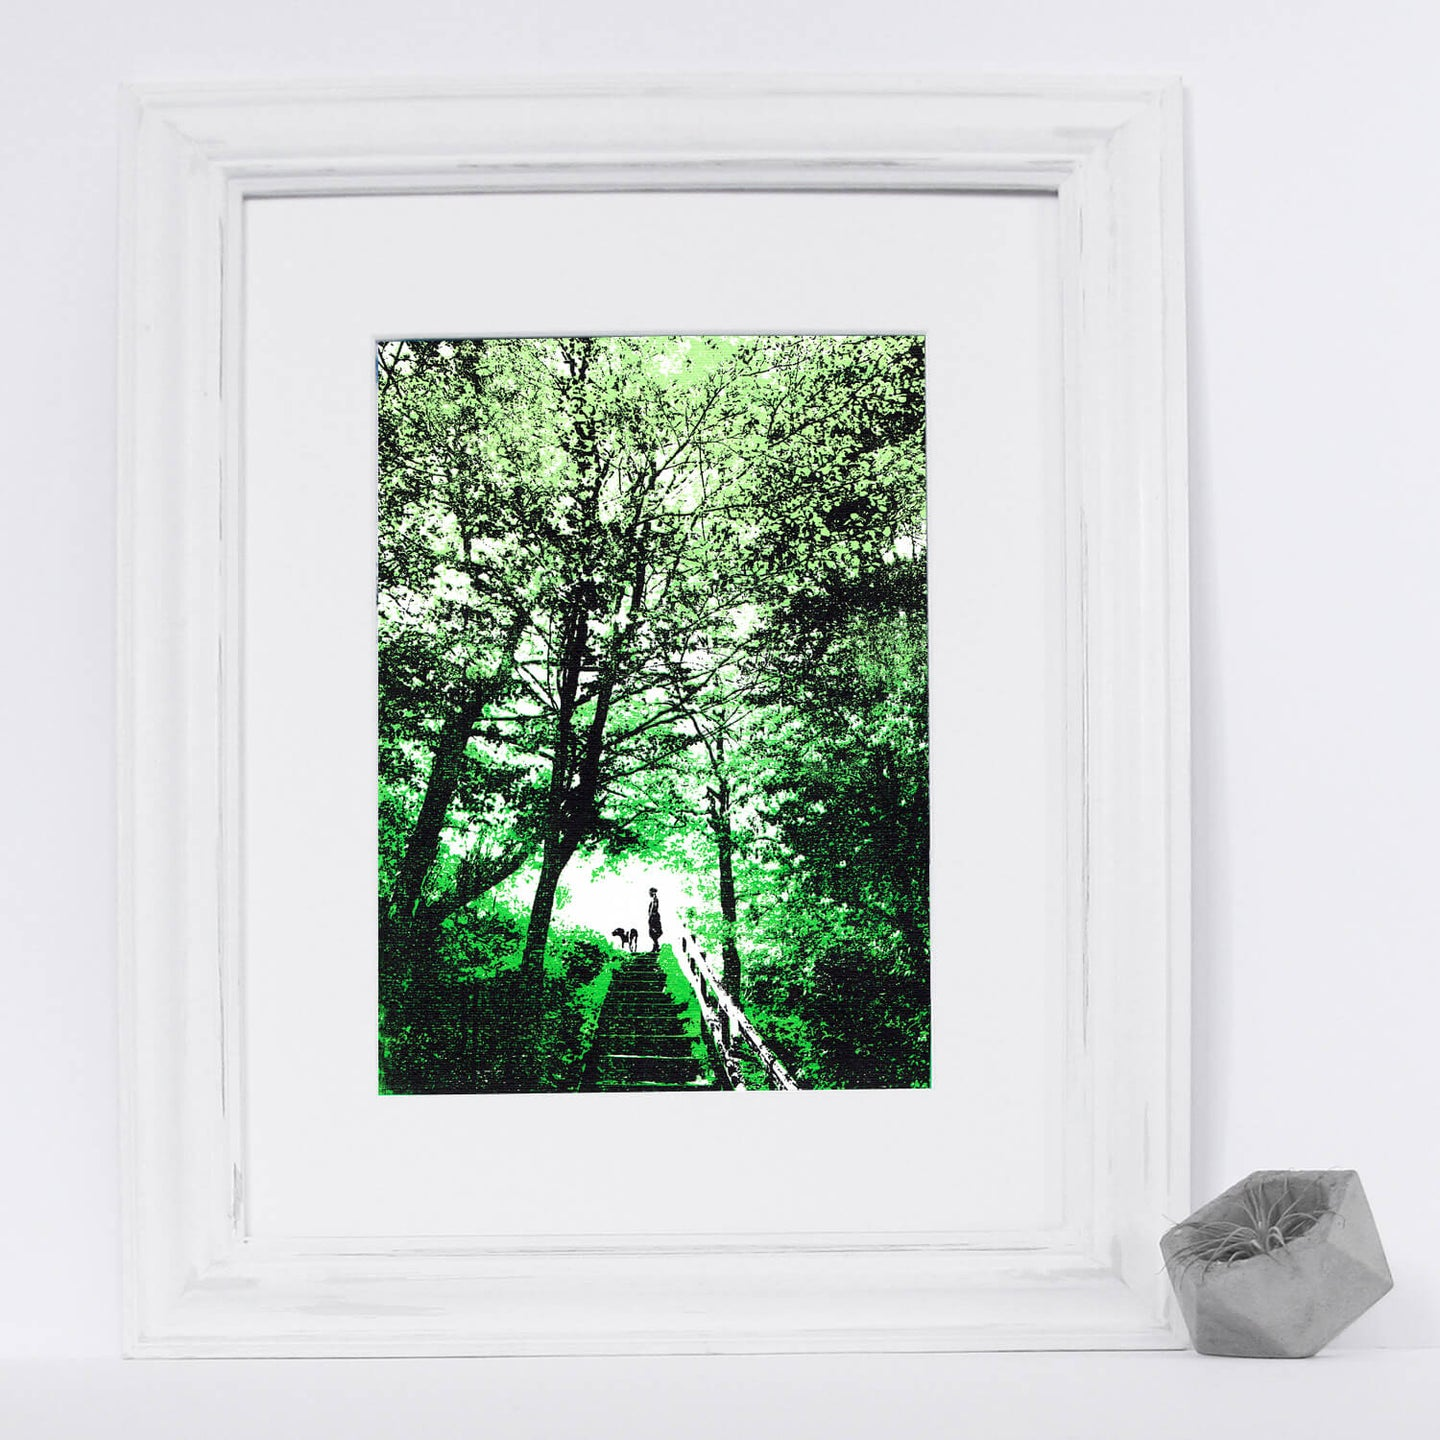 'Woodland Walks' Original Silkscreen Print